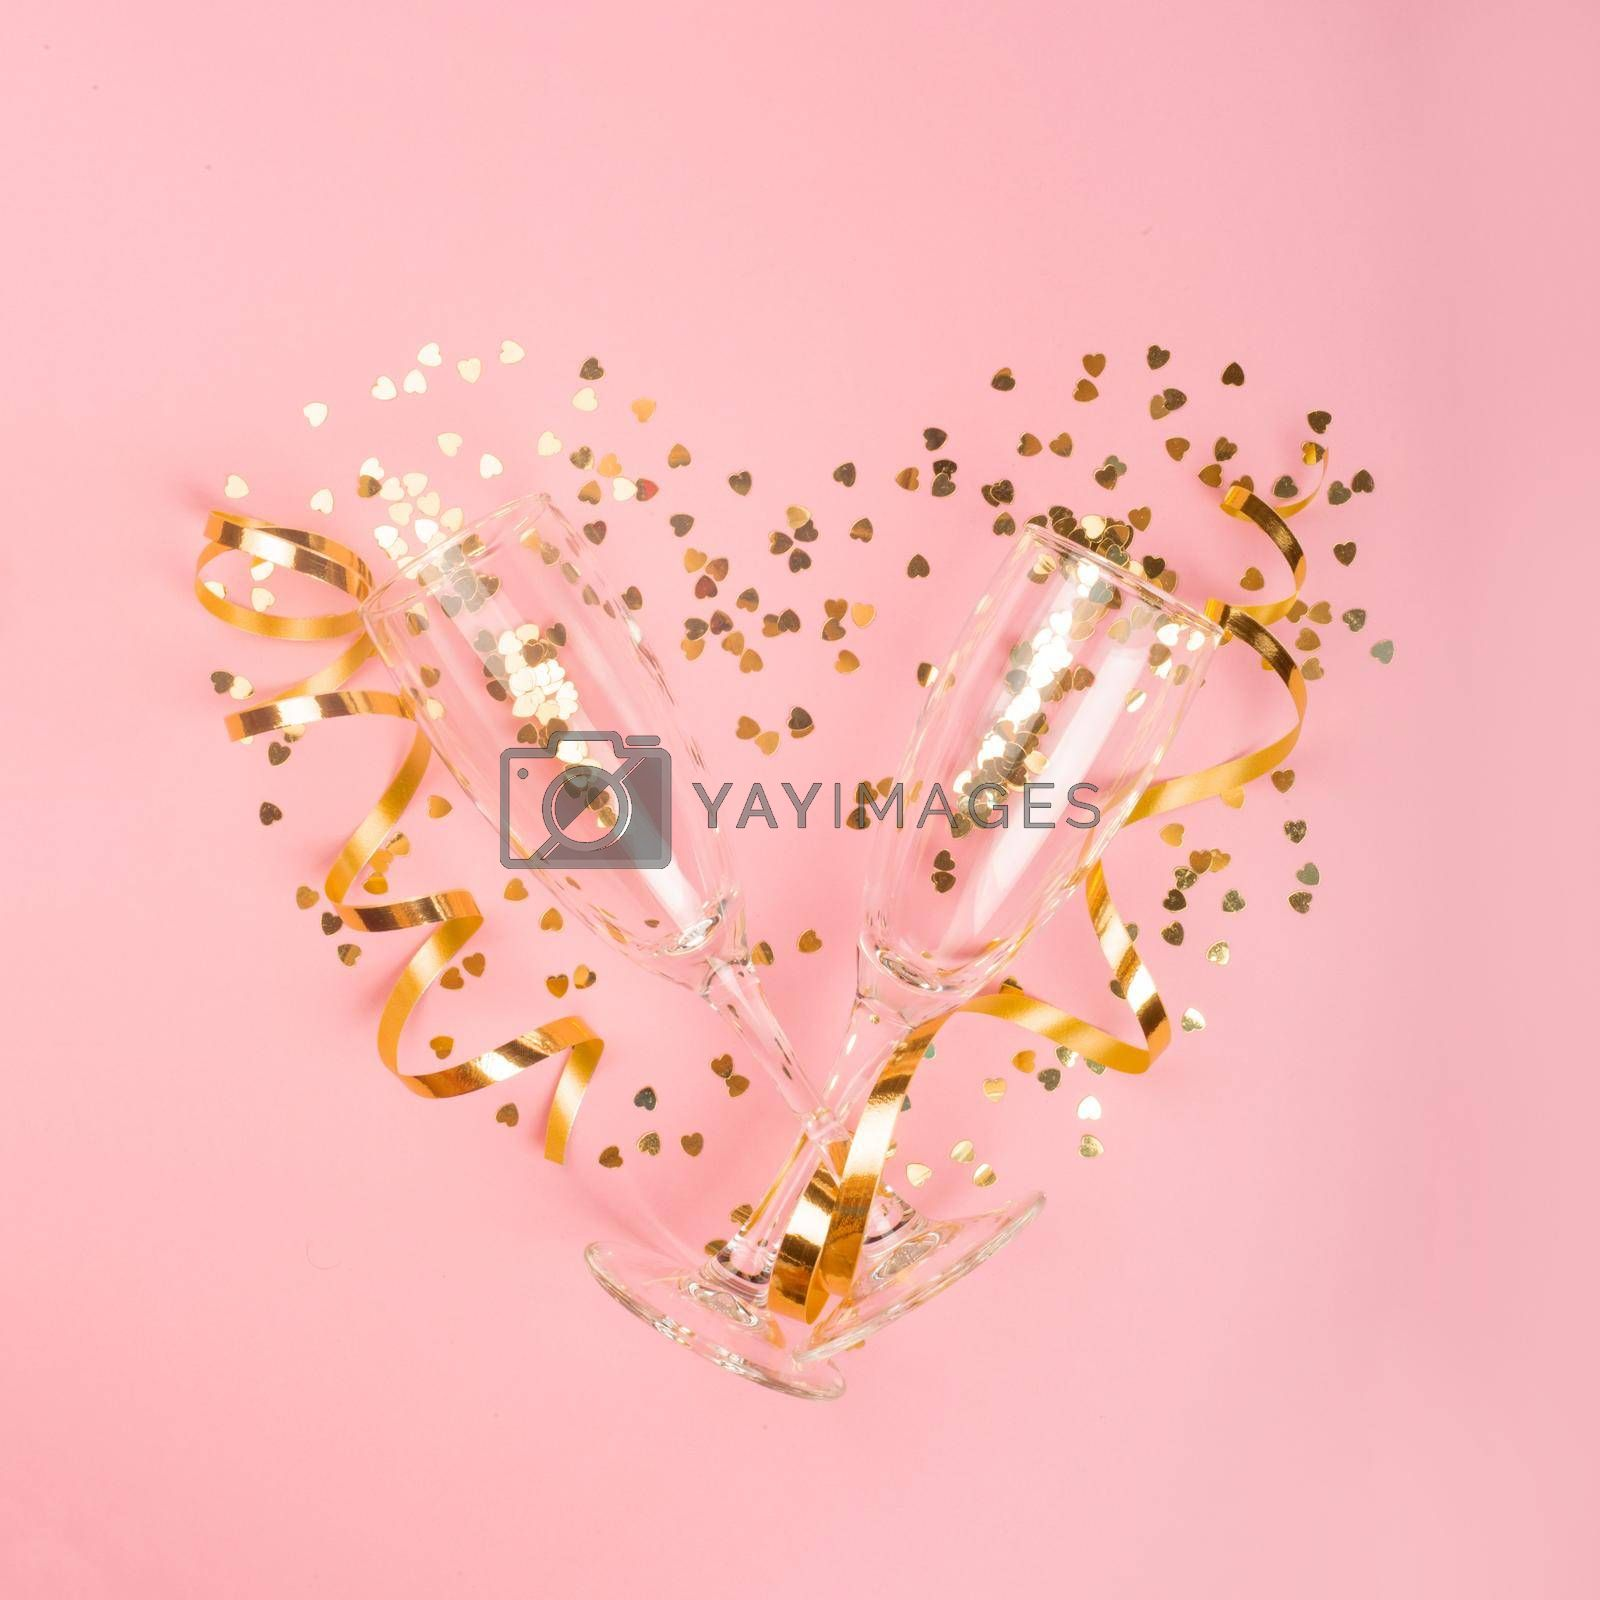 Valentines day champagne flutes glasses and heart shaped golden glitters on pink background with copy space for text